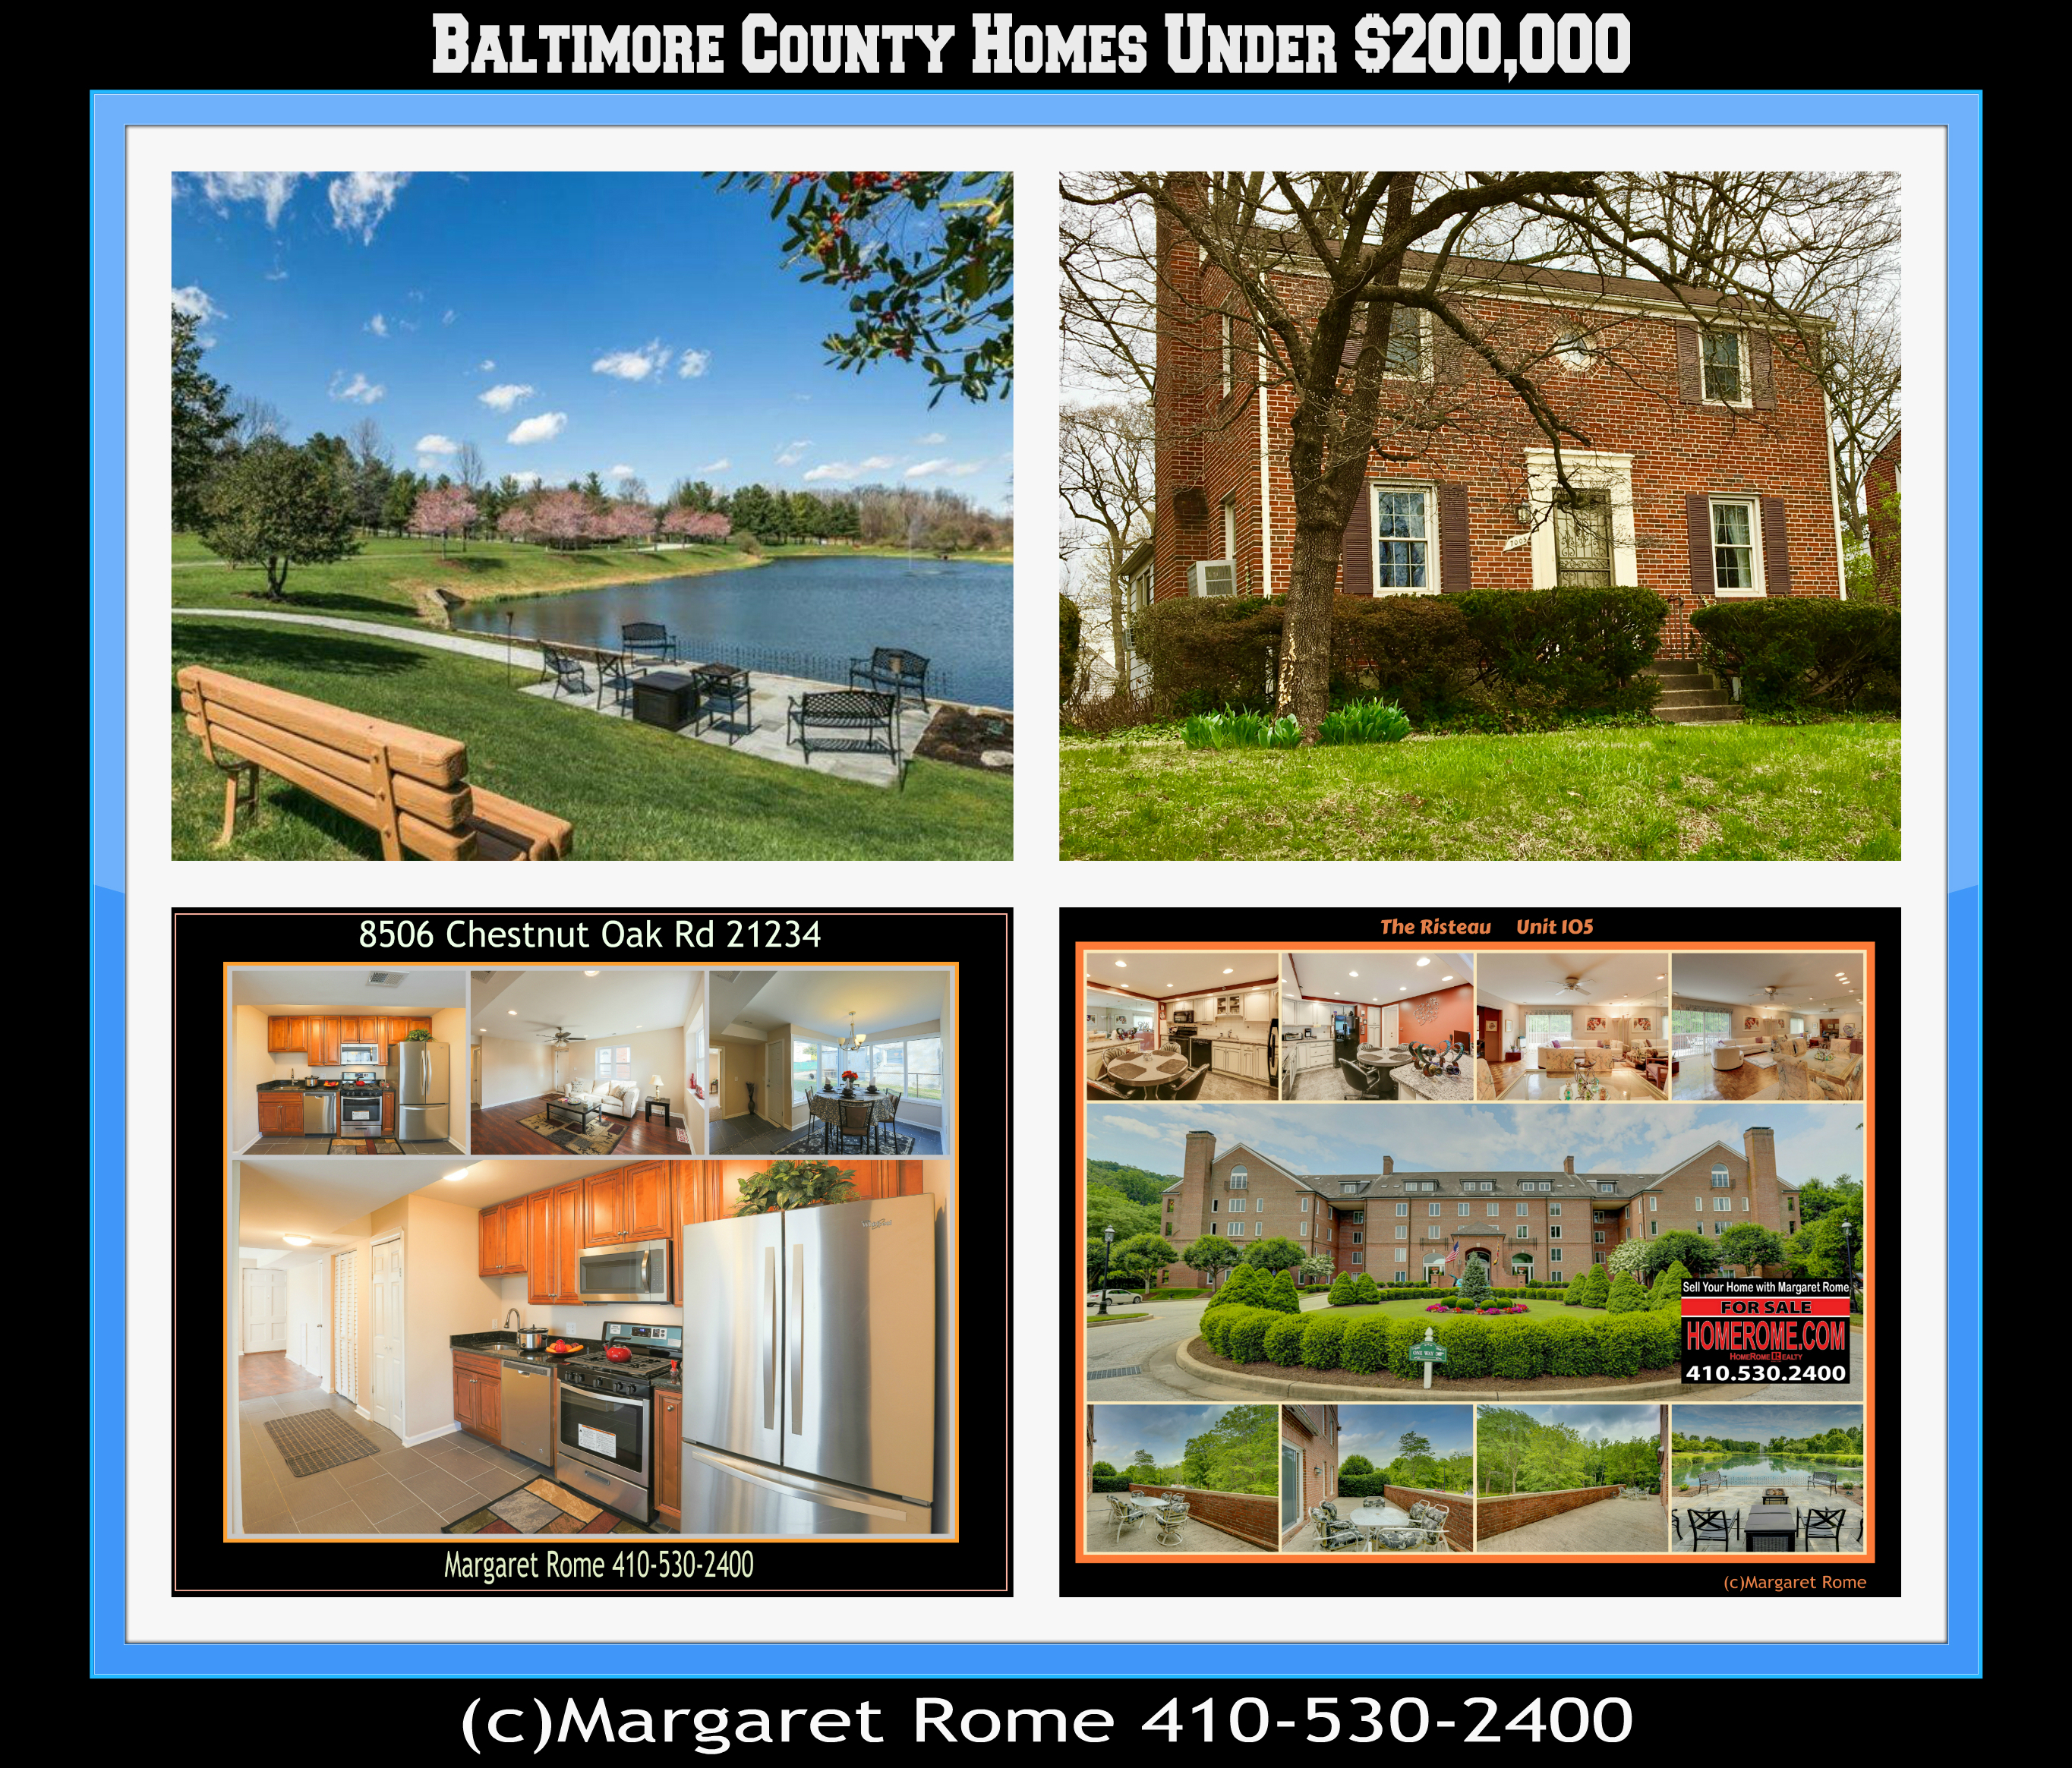 Baltimore County Homes Under $200K